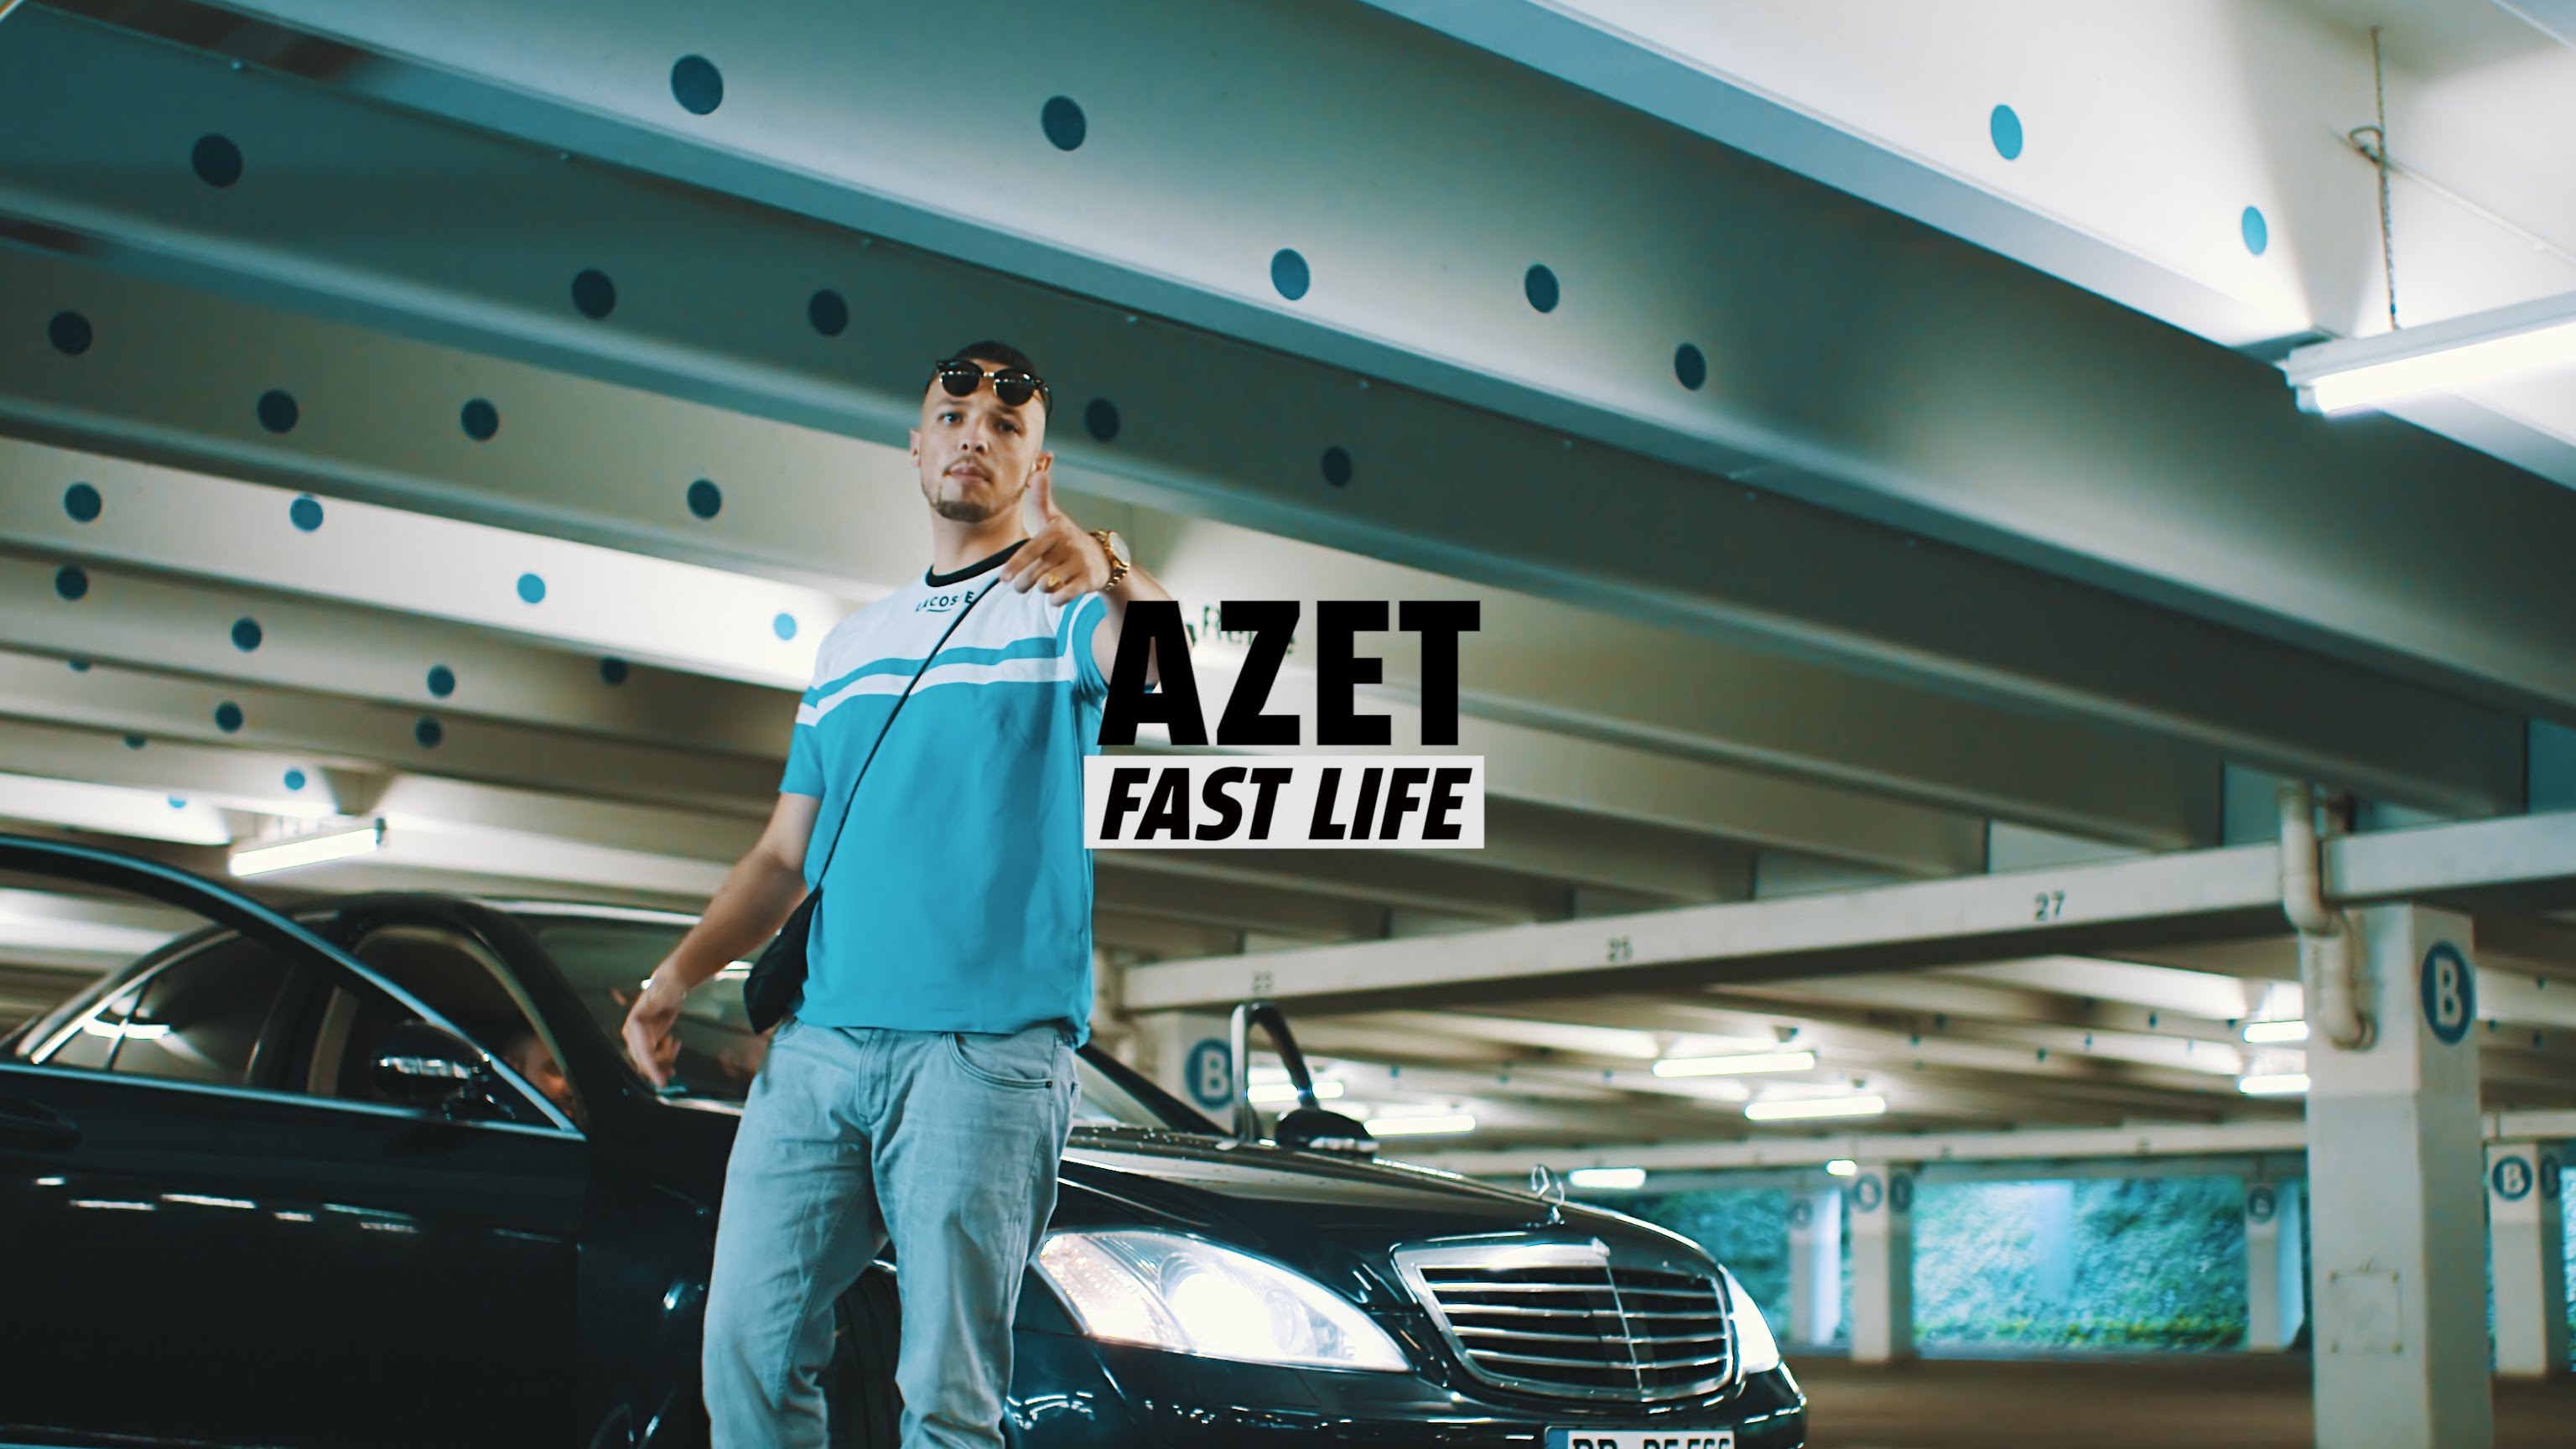 azet-fast-life-video